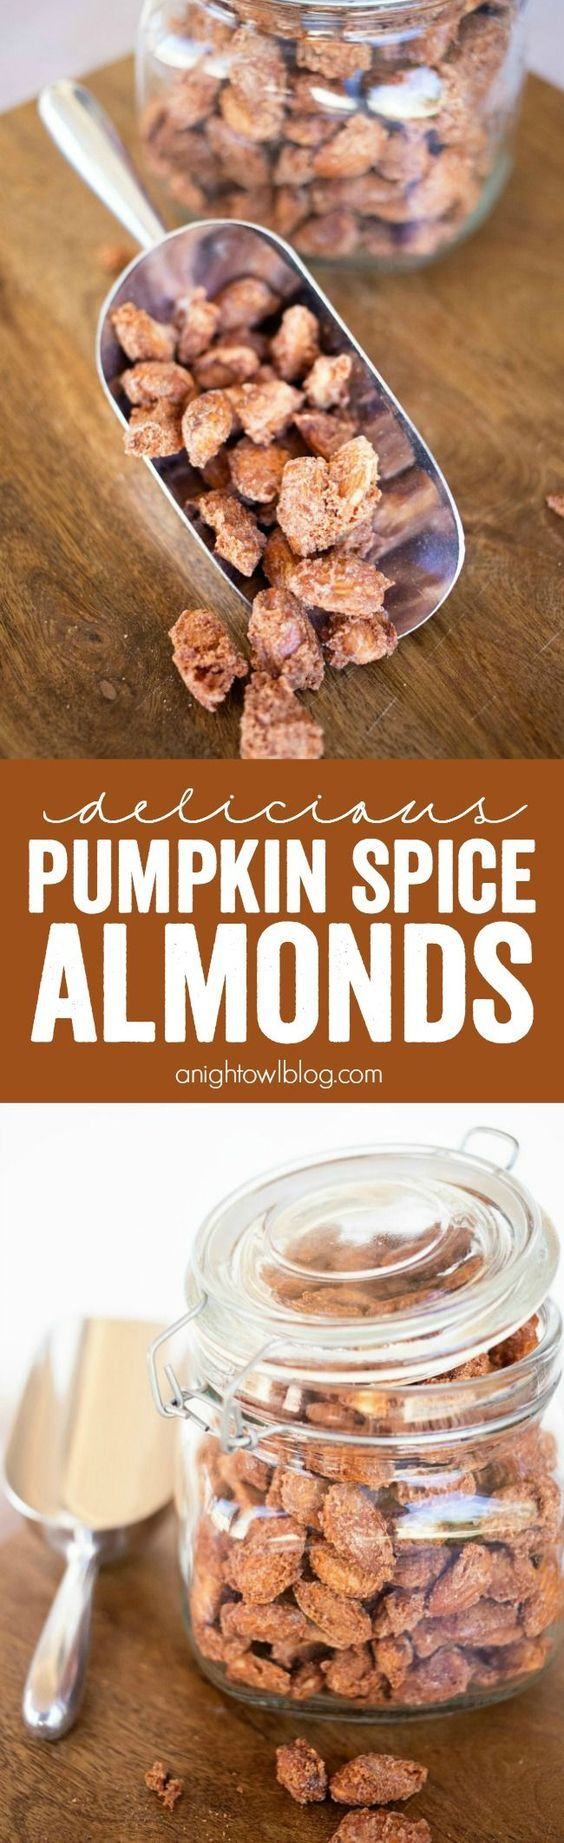 These Pumpkin Spice Almonds are easy to make and the perfect snack for the…